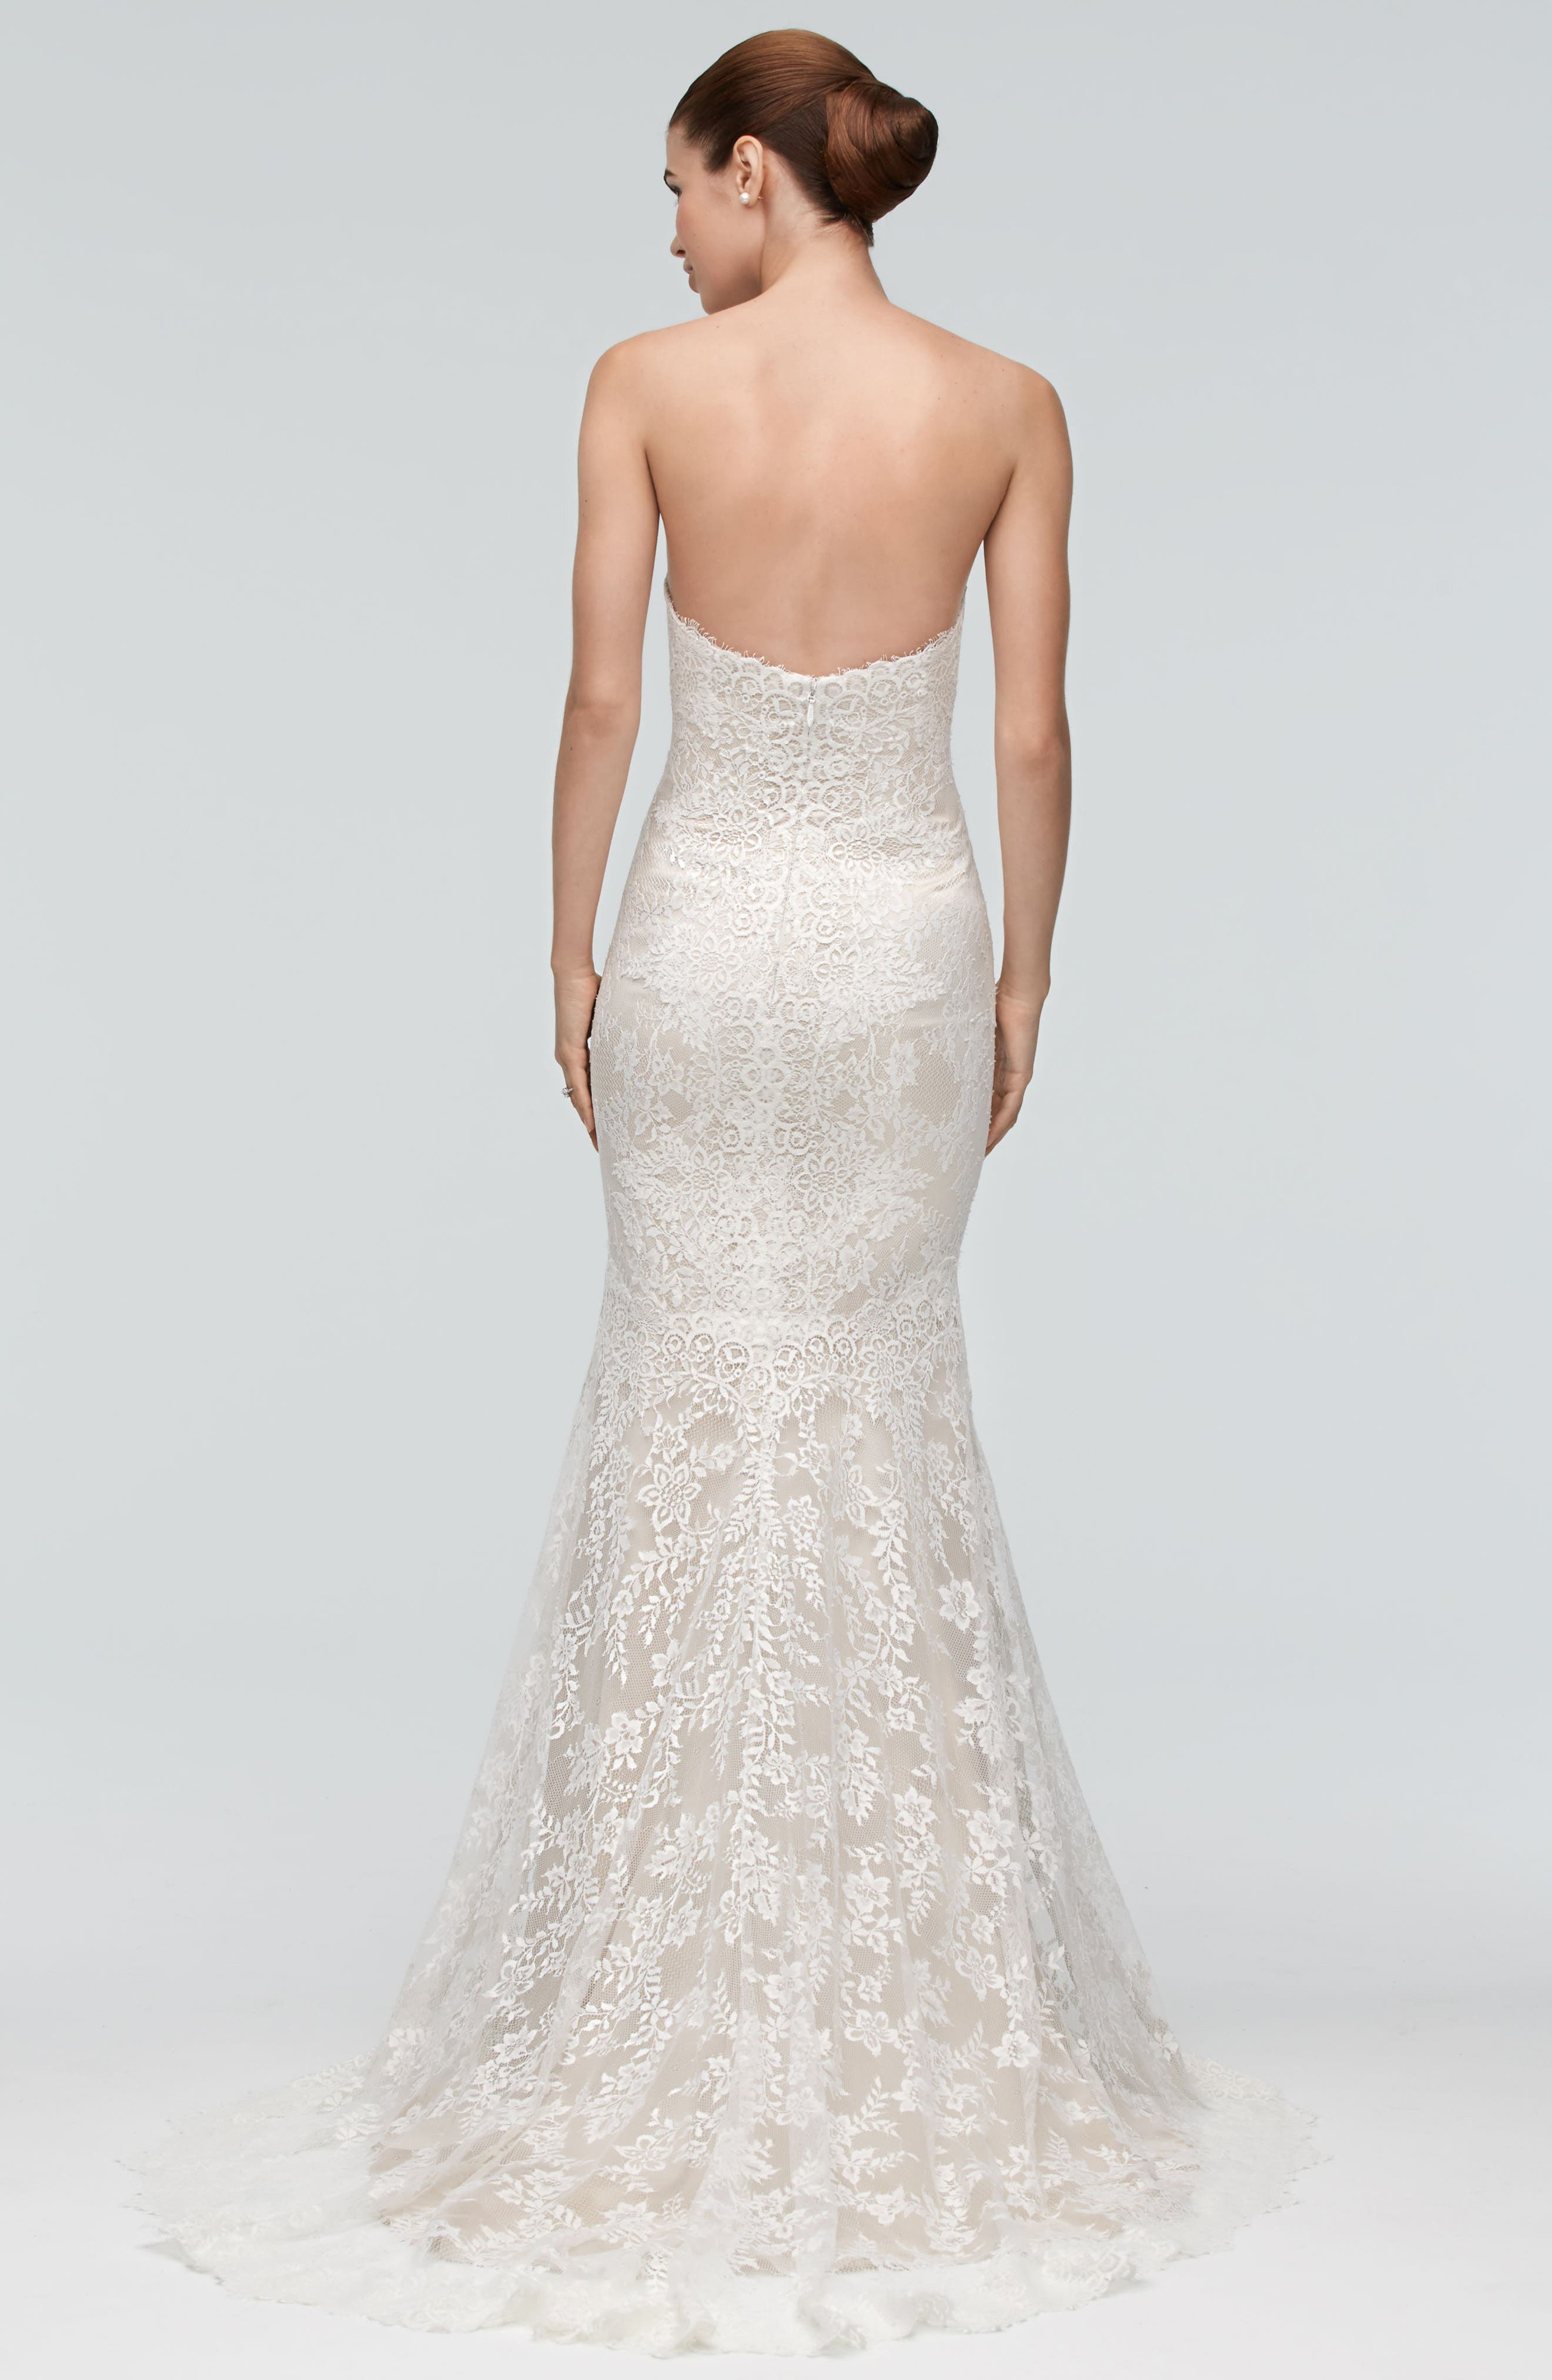 Oma Lace Trumpet Gown,                             Alternate thumbnail 2, color,                             900